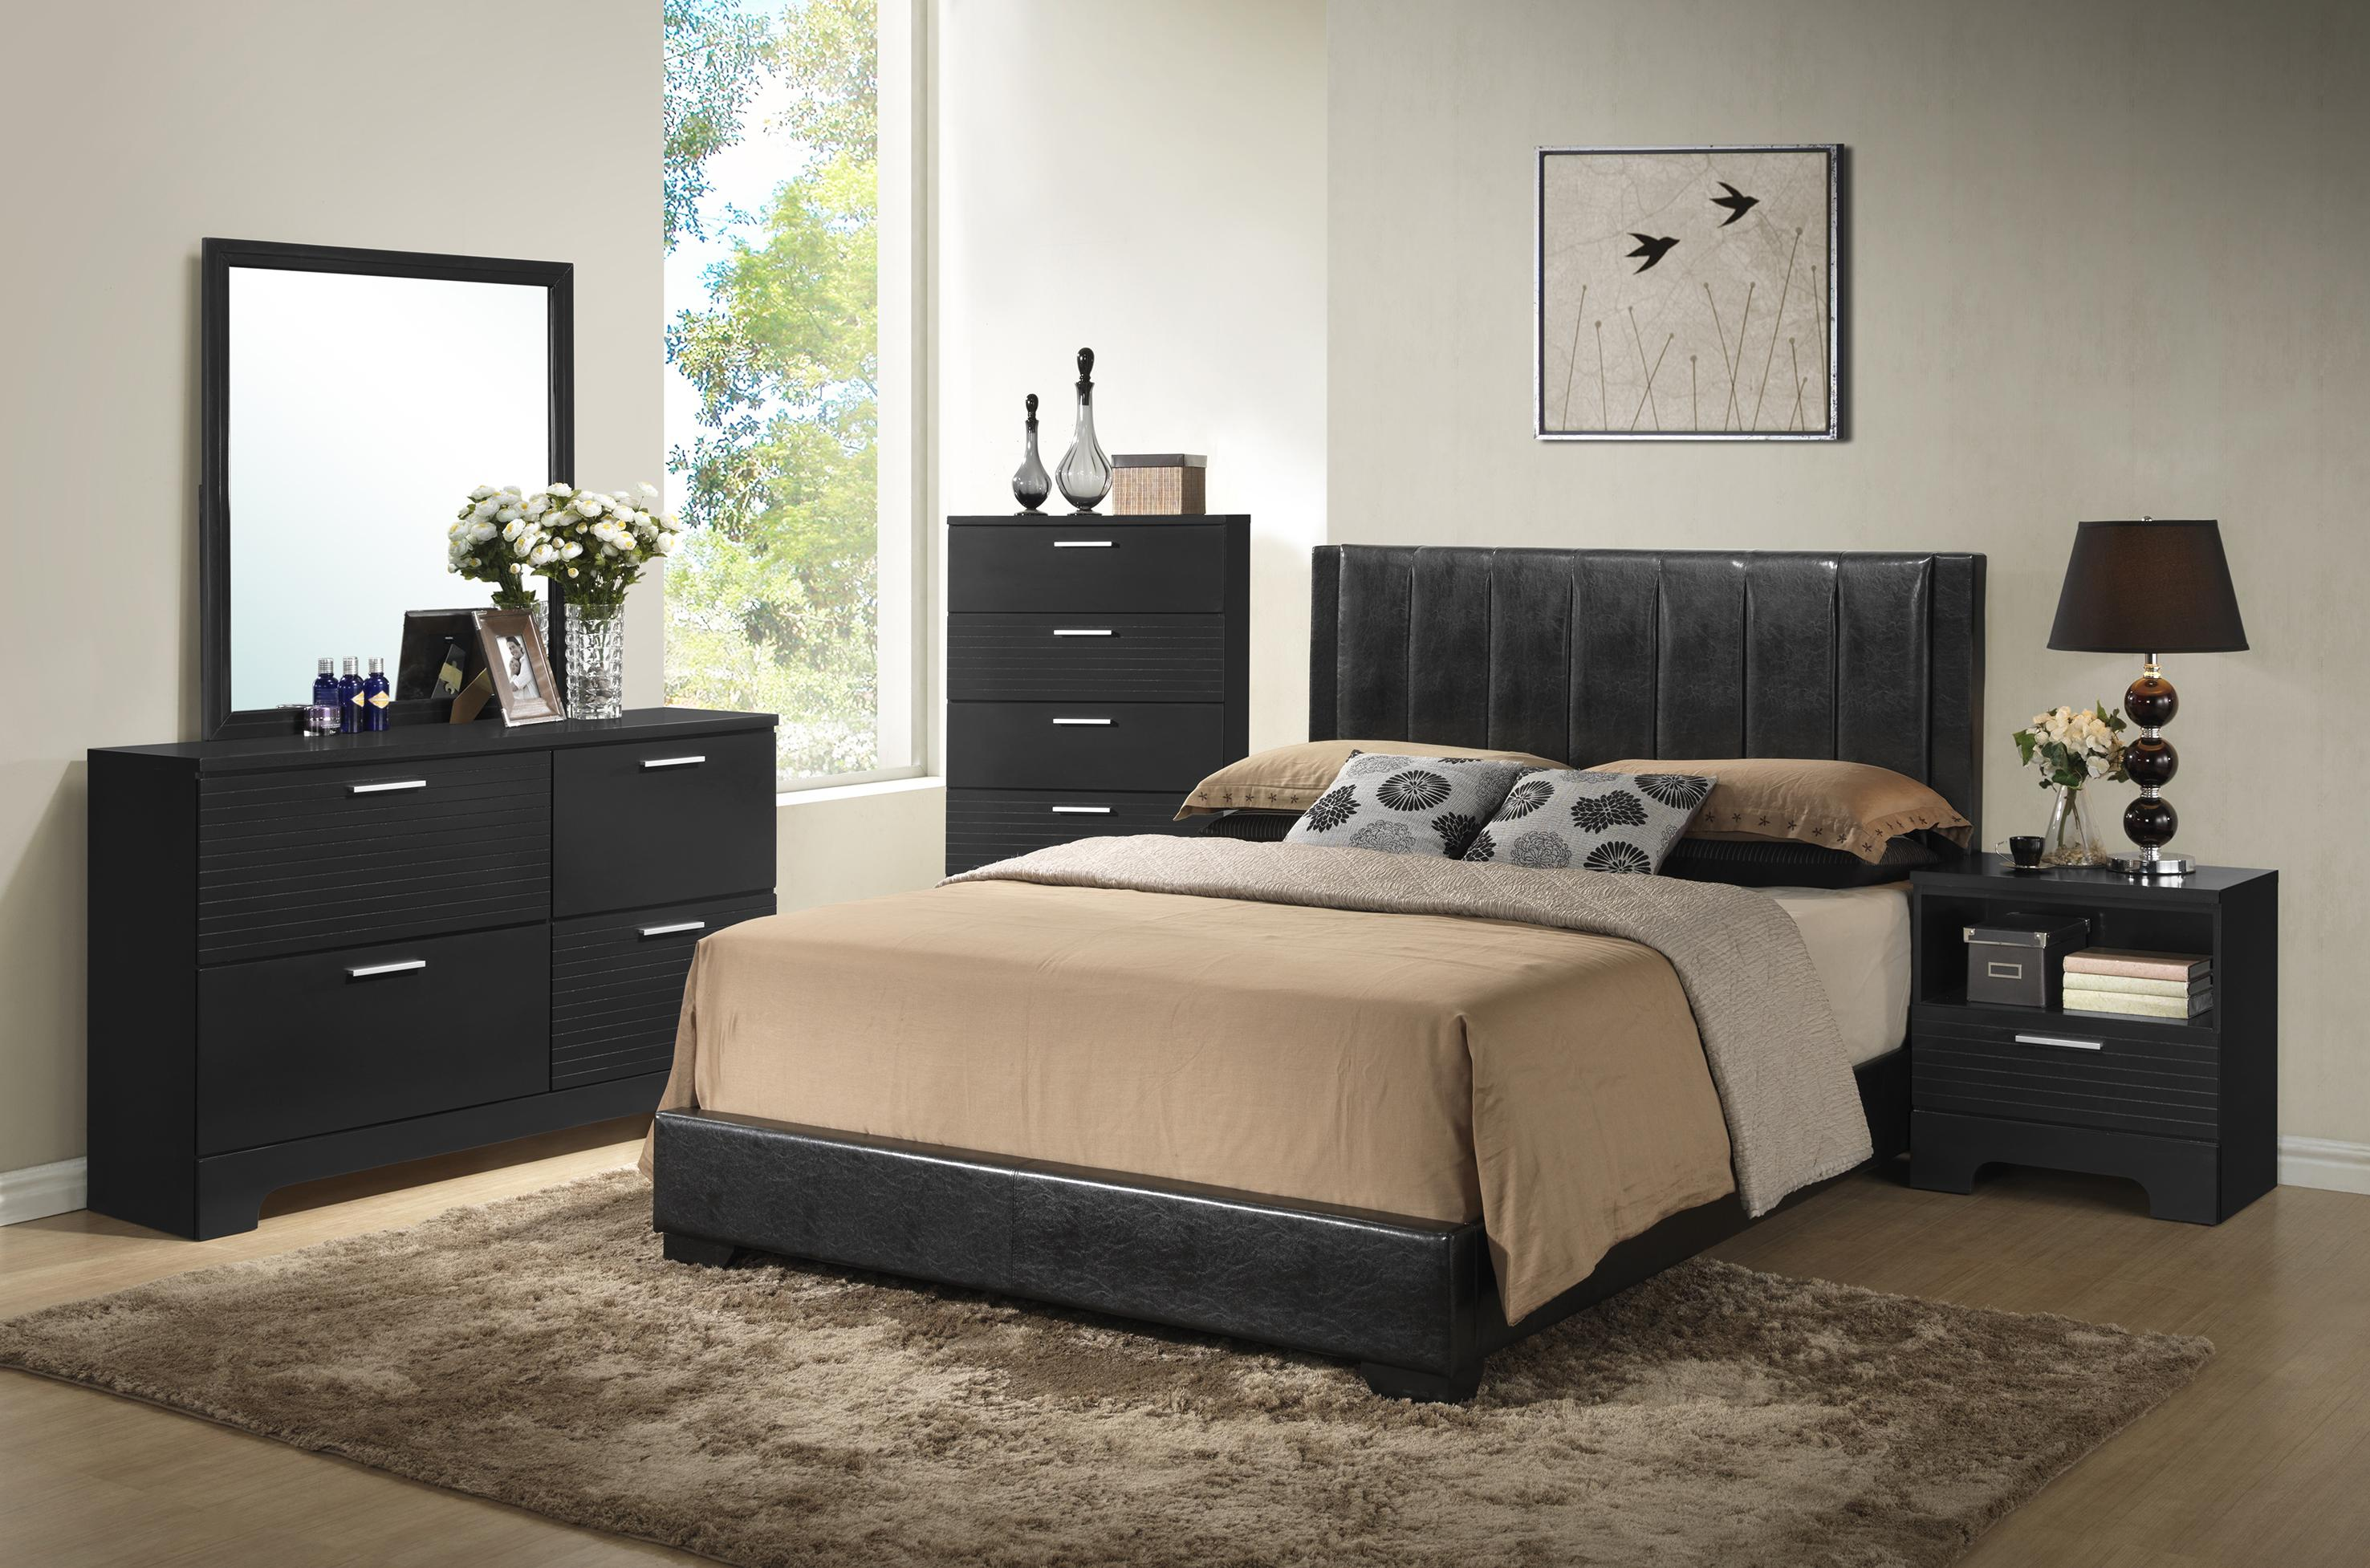 lifestyle c4333a king bedroom group household furniture bedroom